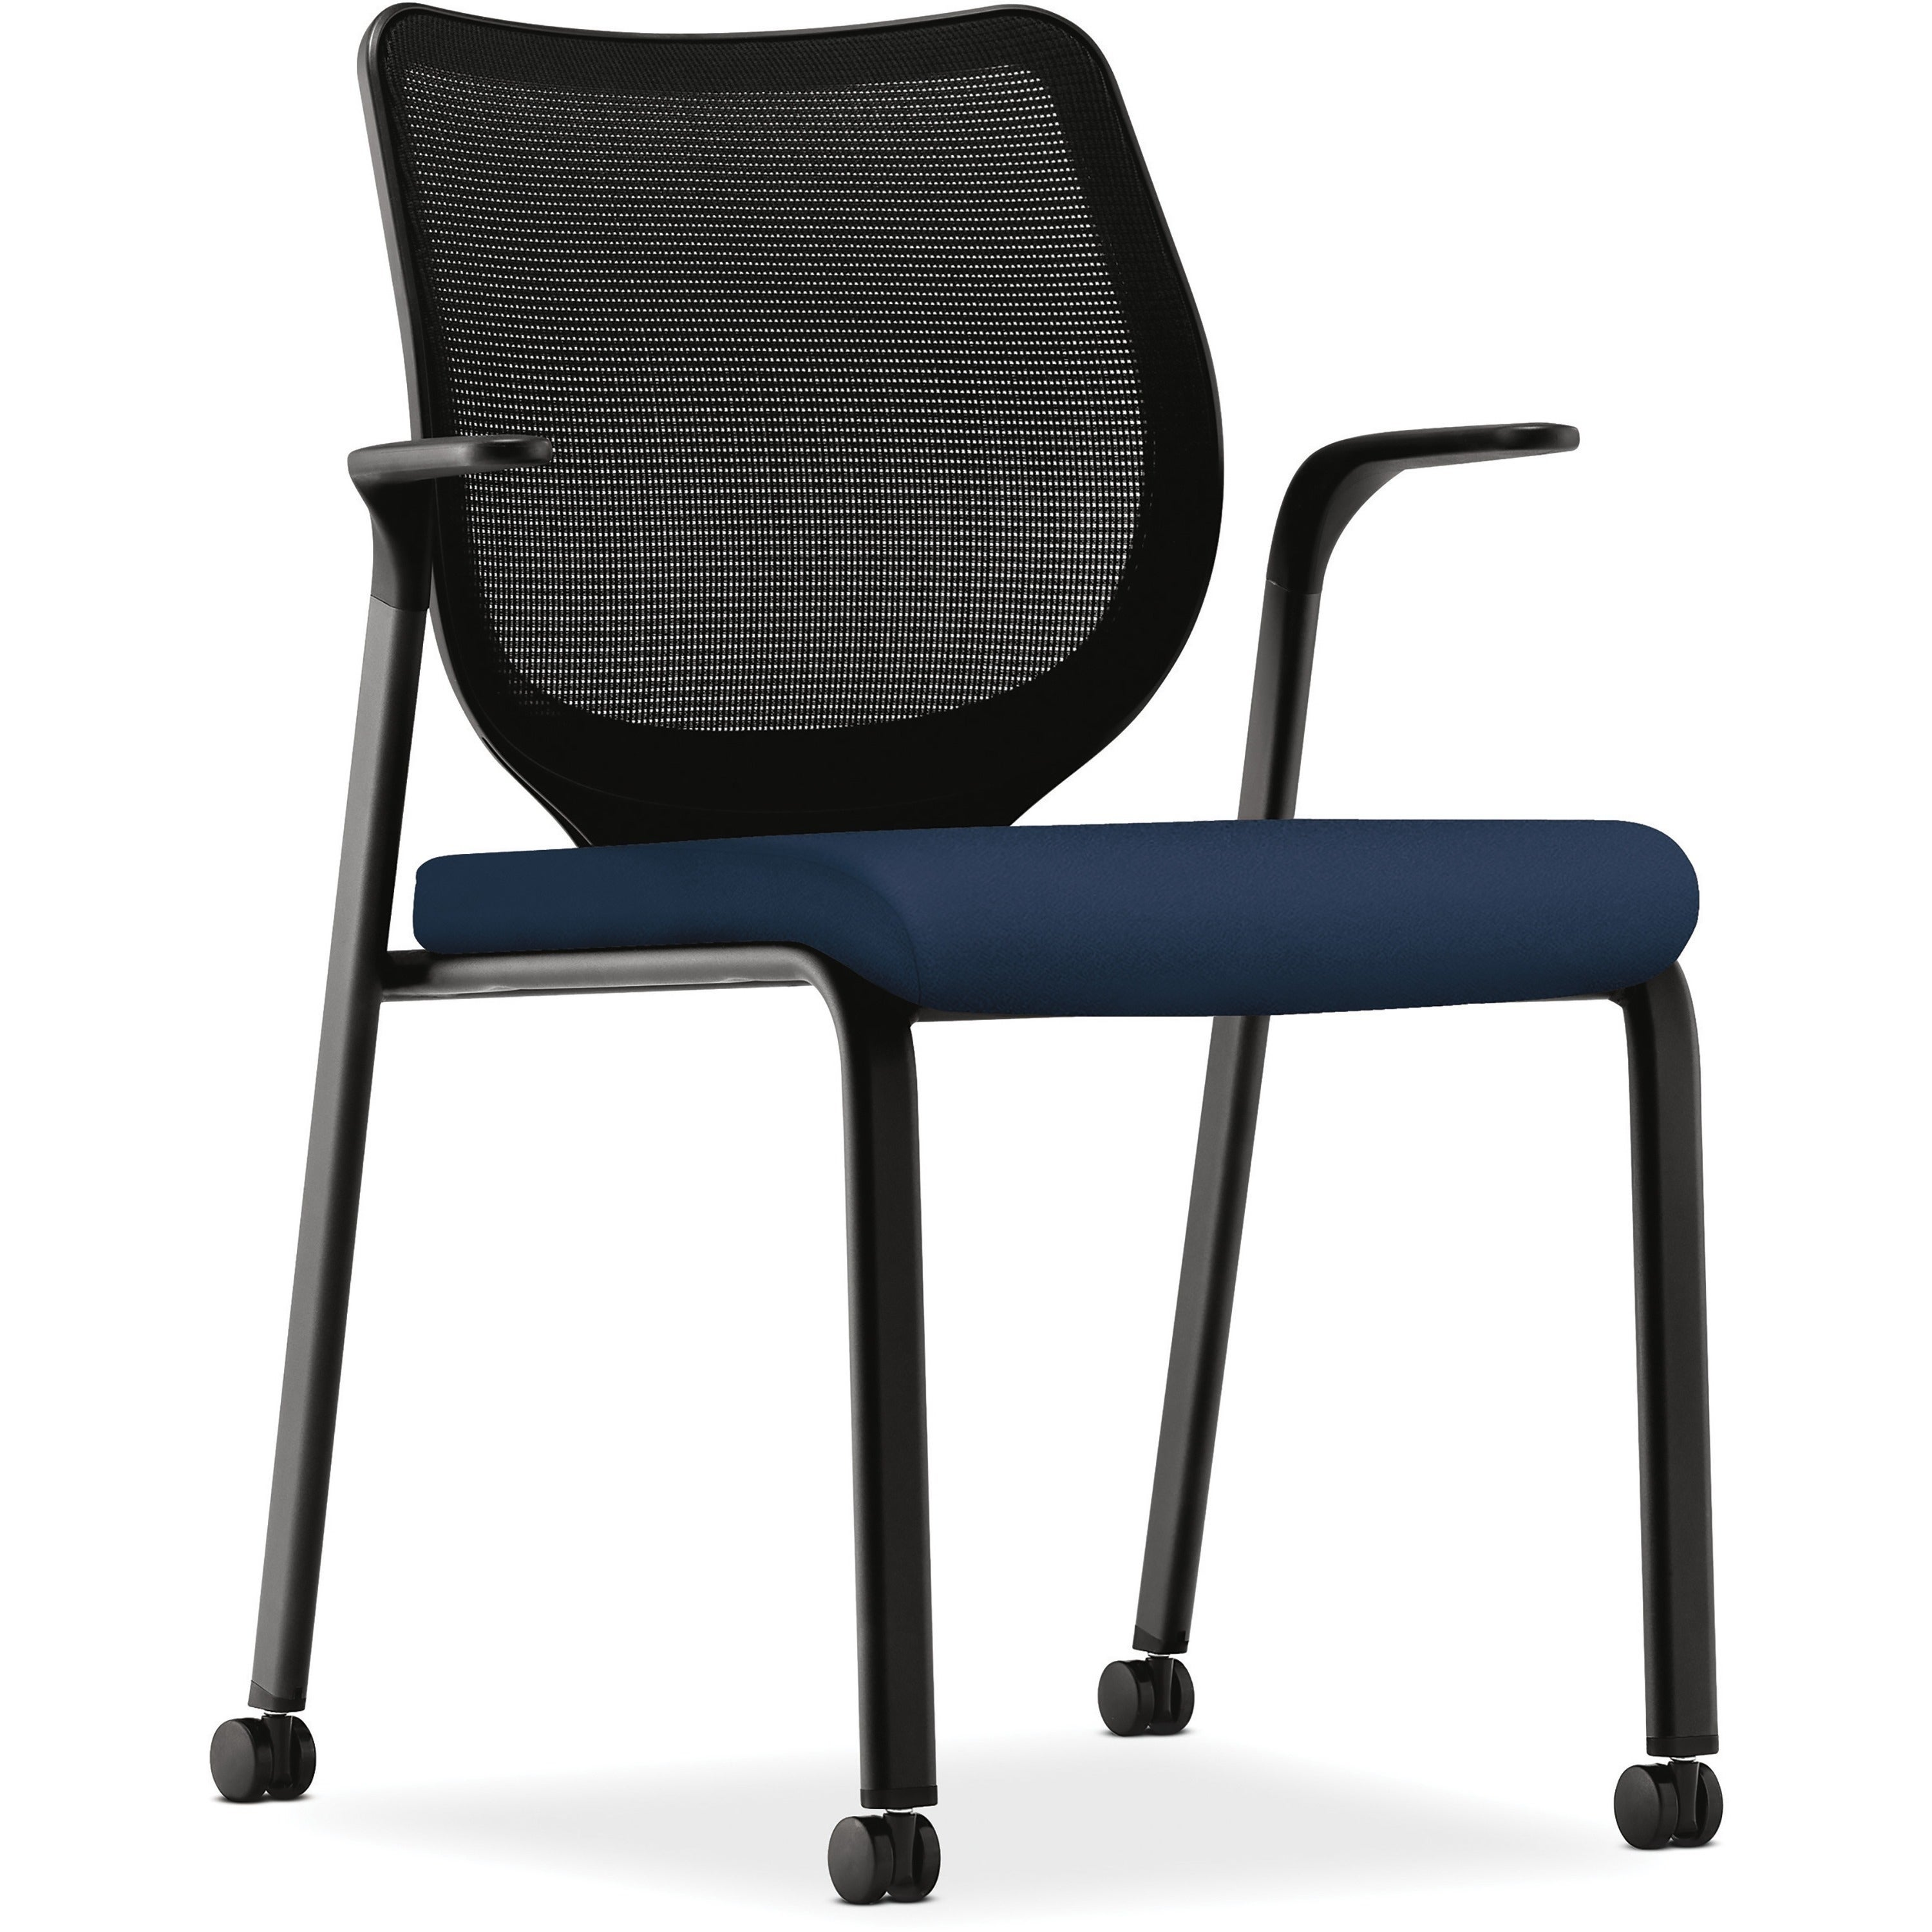 Ordinaire Shop HON Ignition Centurion Navy Fabric Chair   Free Shipping Today    Overstock   23561651